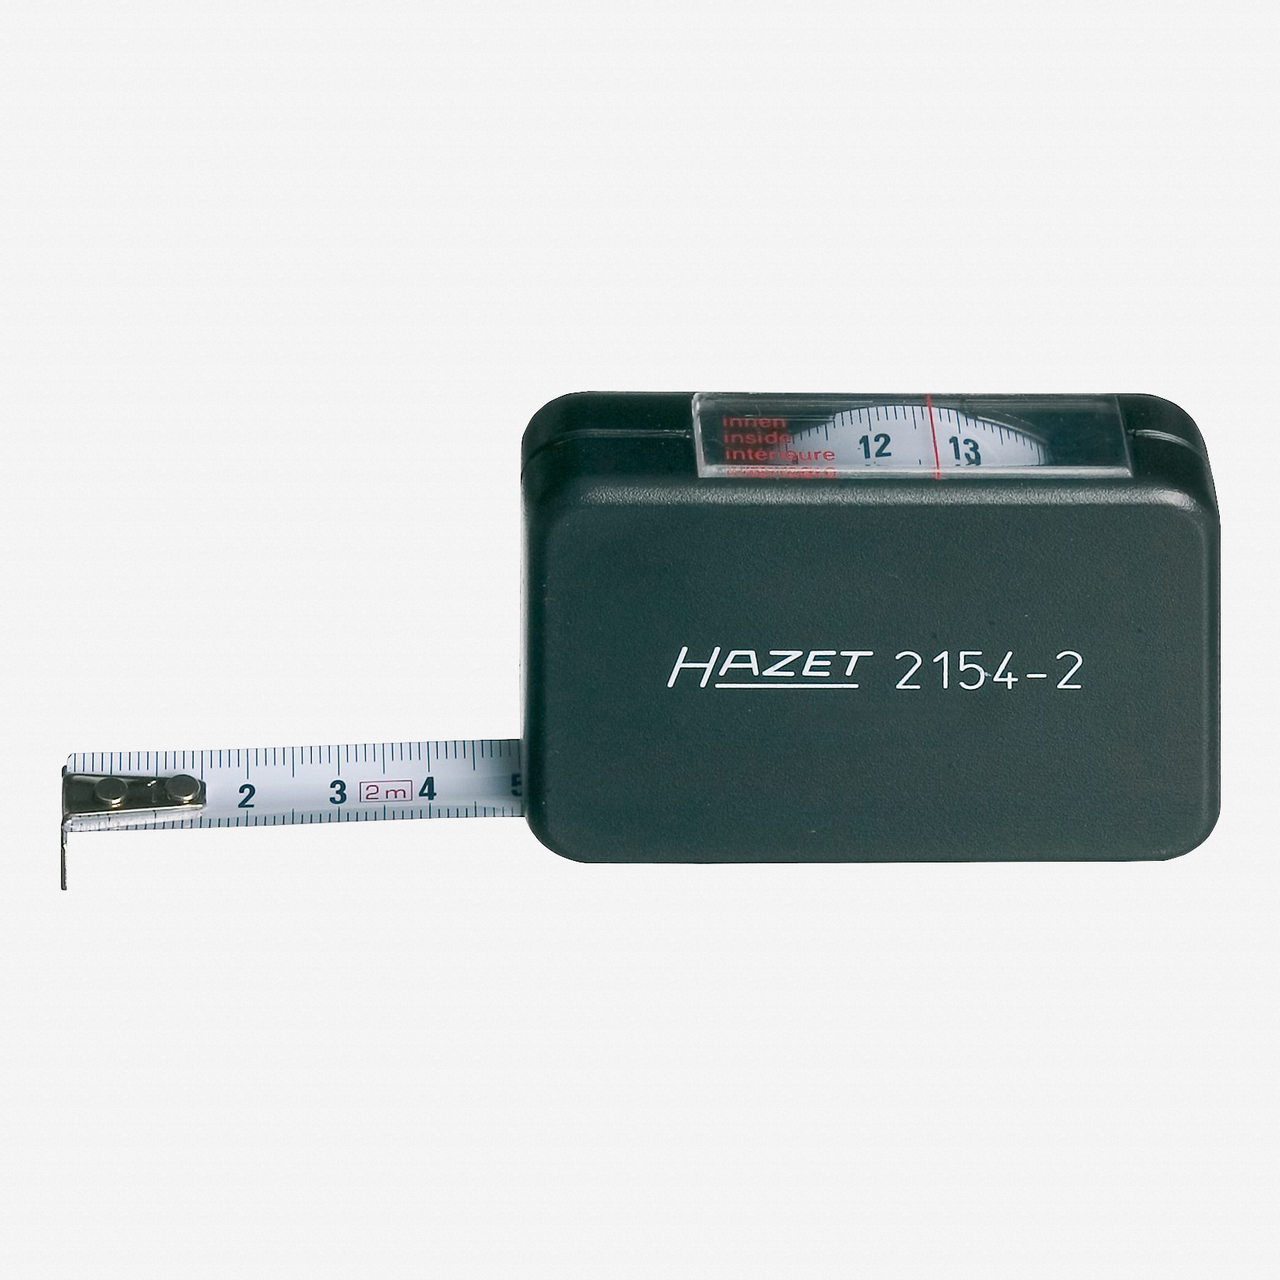 Hazet 2154-2 Measuring tape 2m - KC Tool